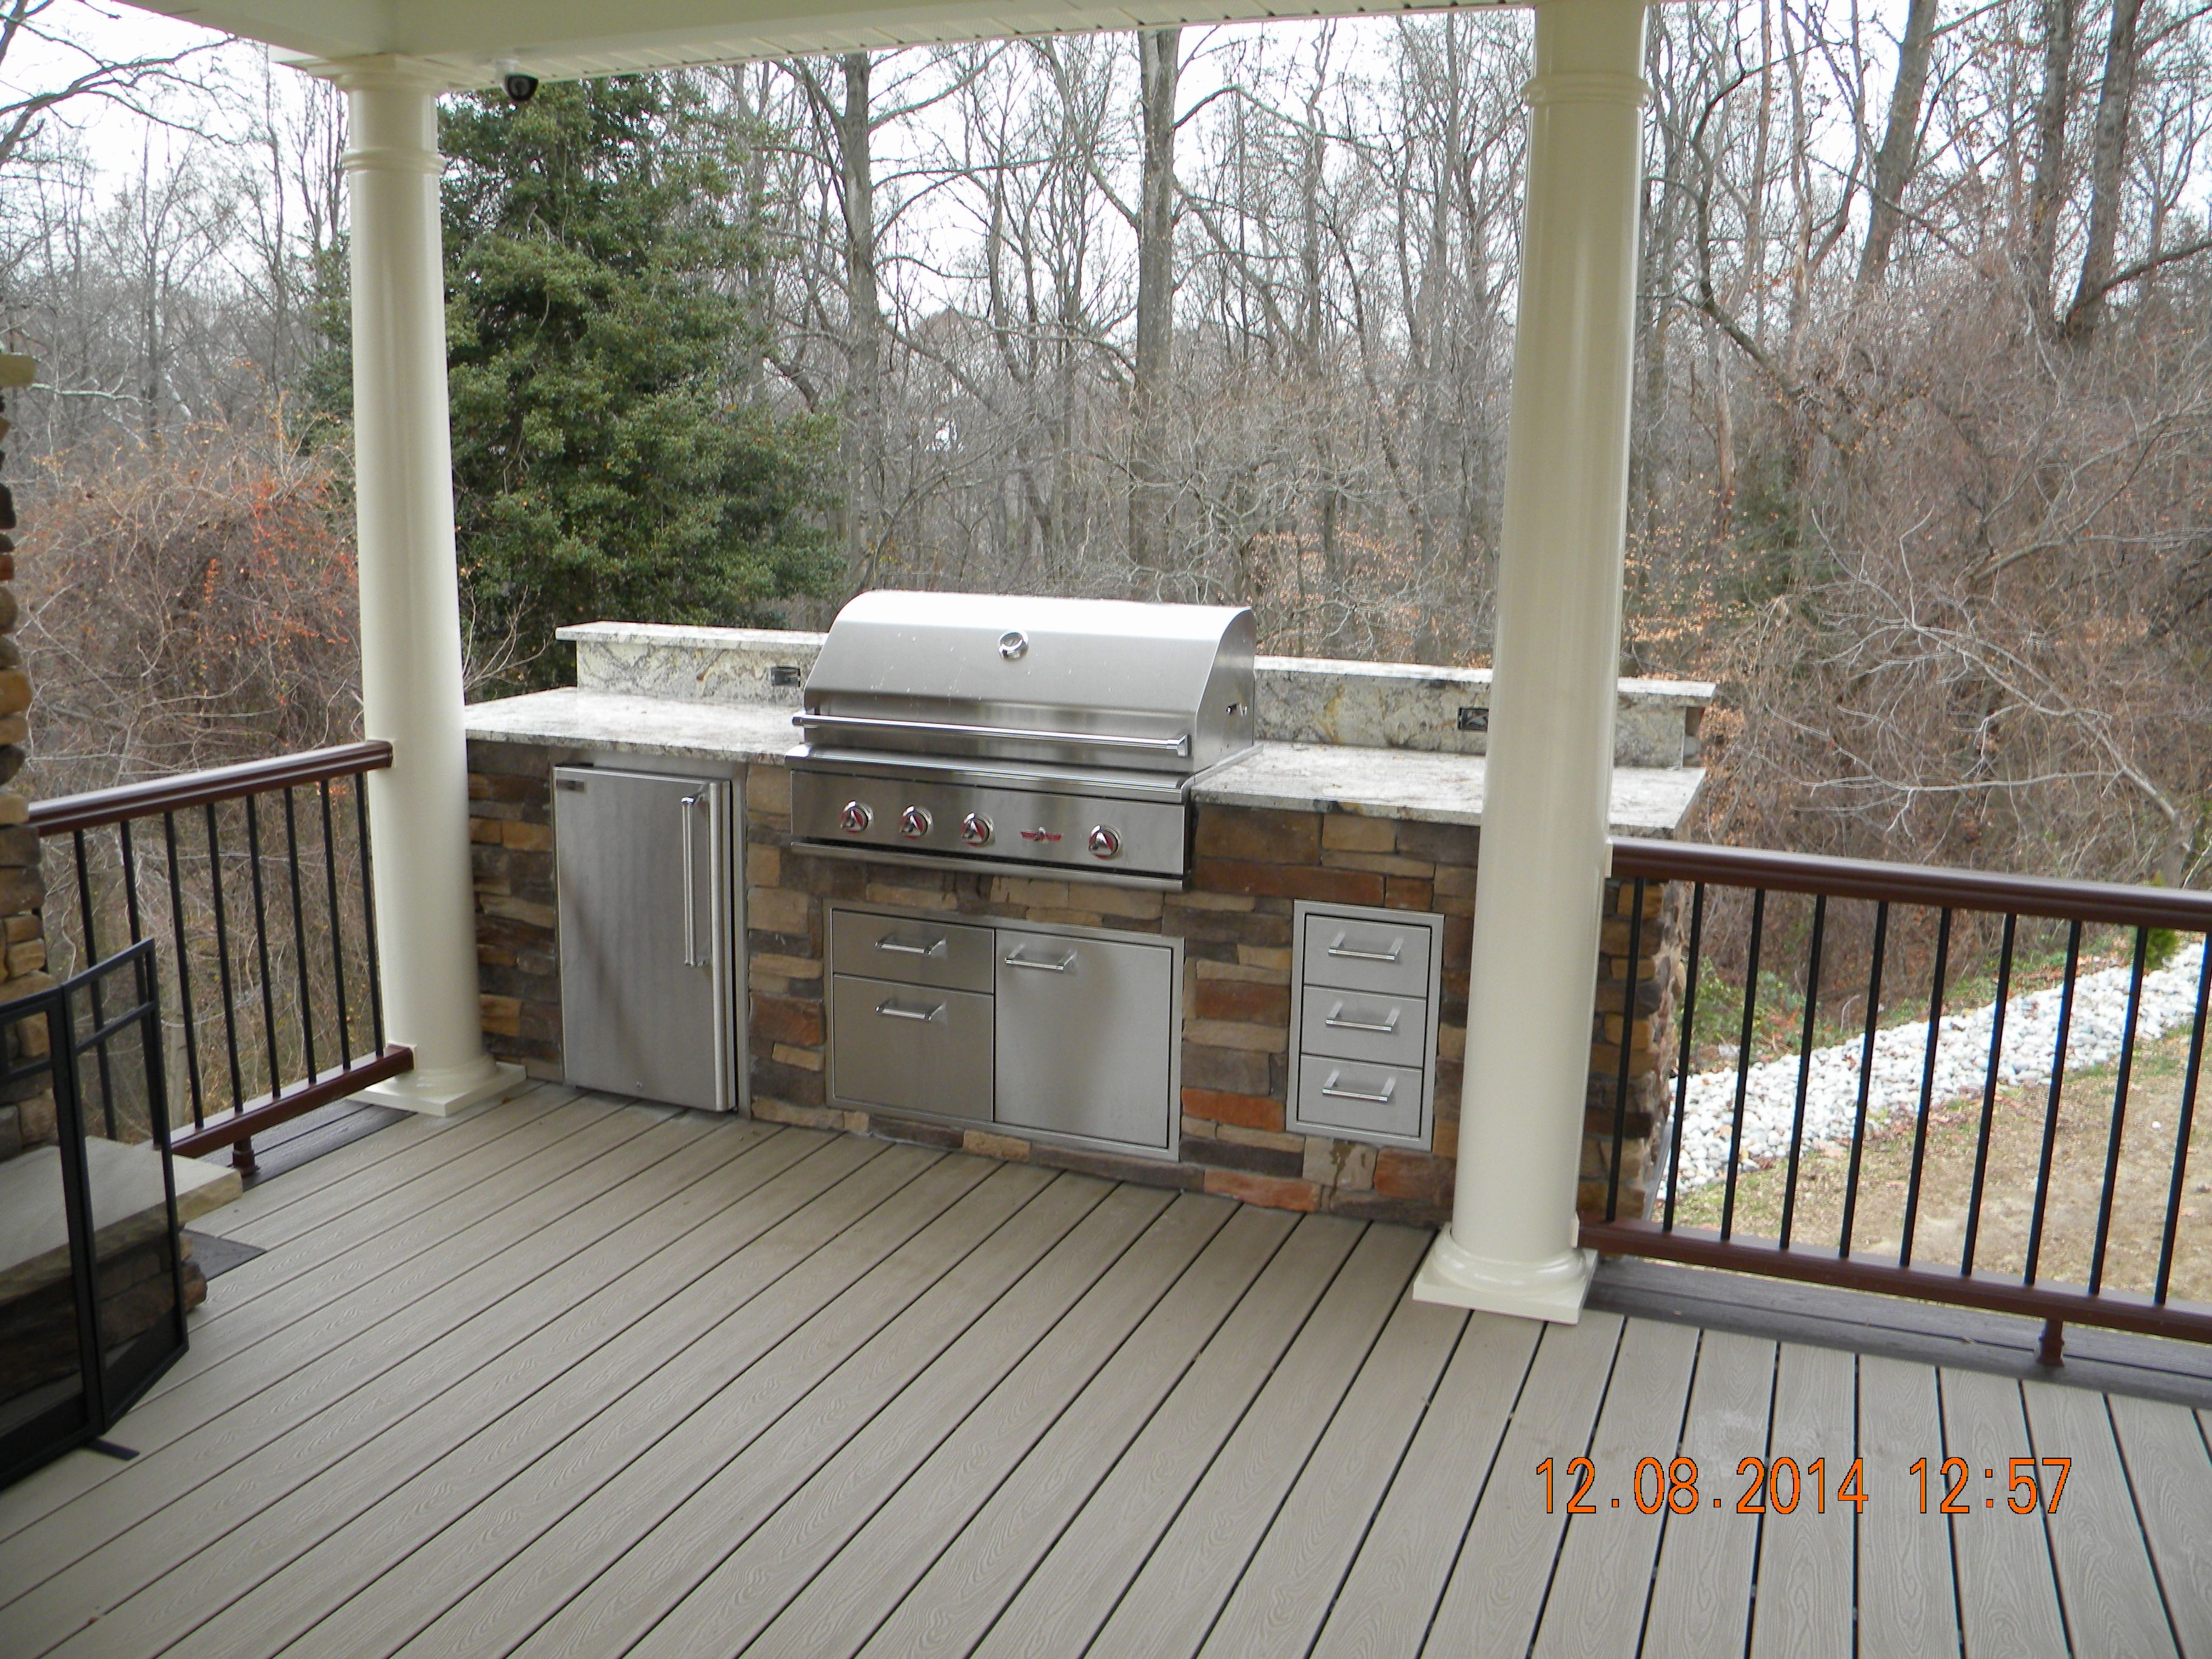 Www Anotheramazingdeck Com Trex Transcend Deck With Custom Grill Island Outdoor Grill Station Outdoor Kitchen Design Layout Built In Grill